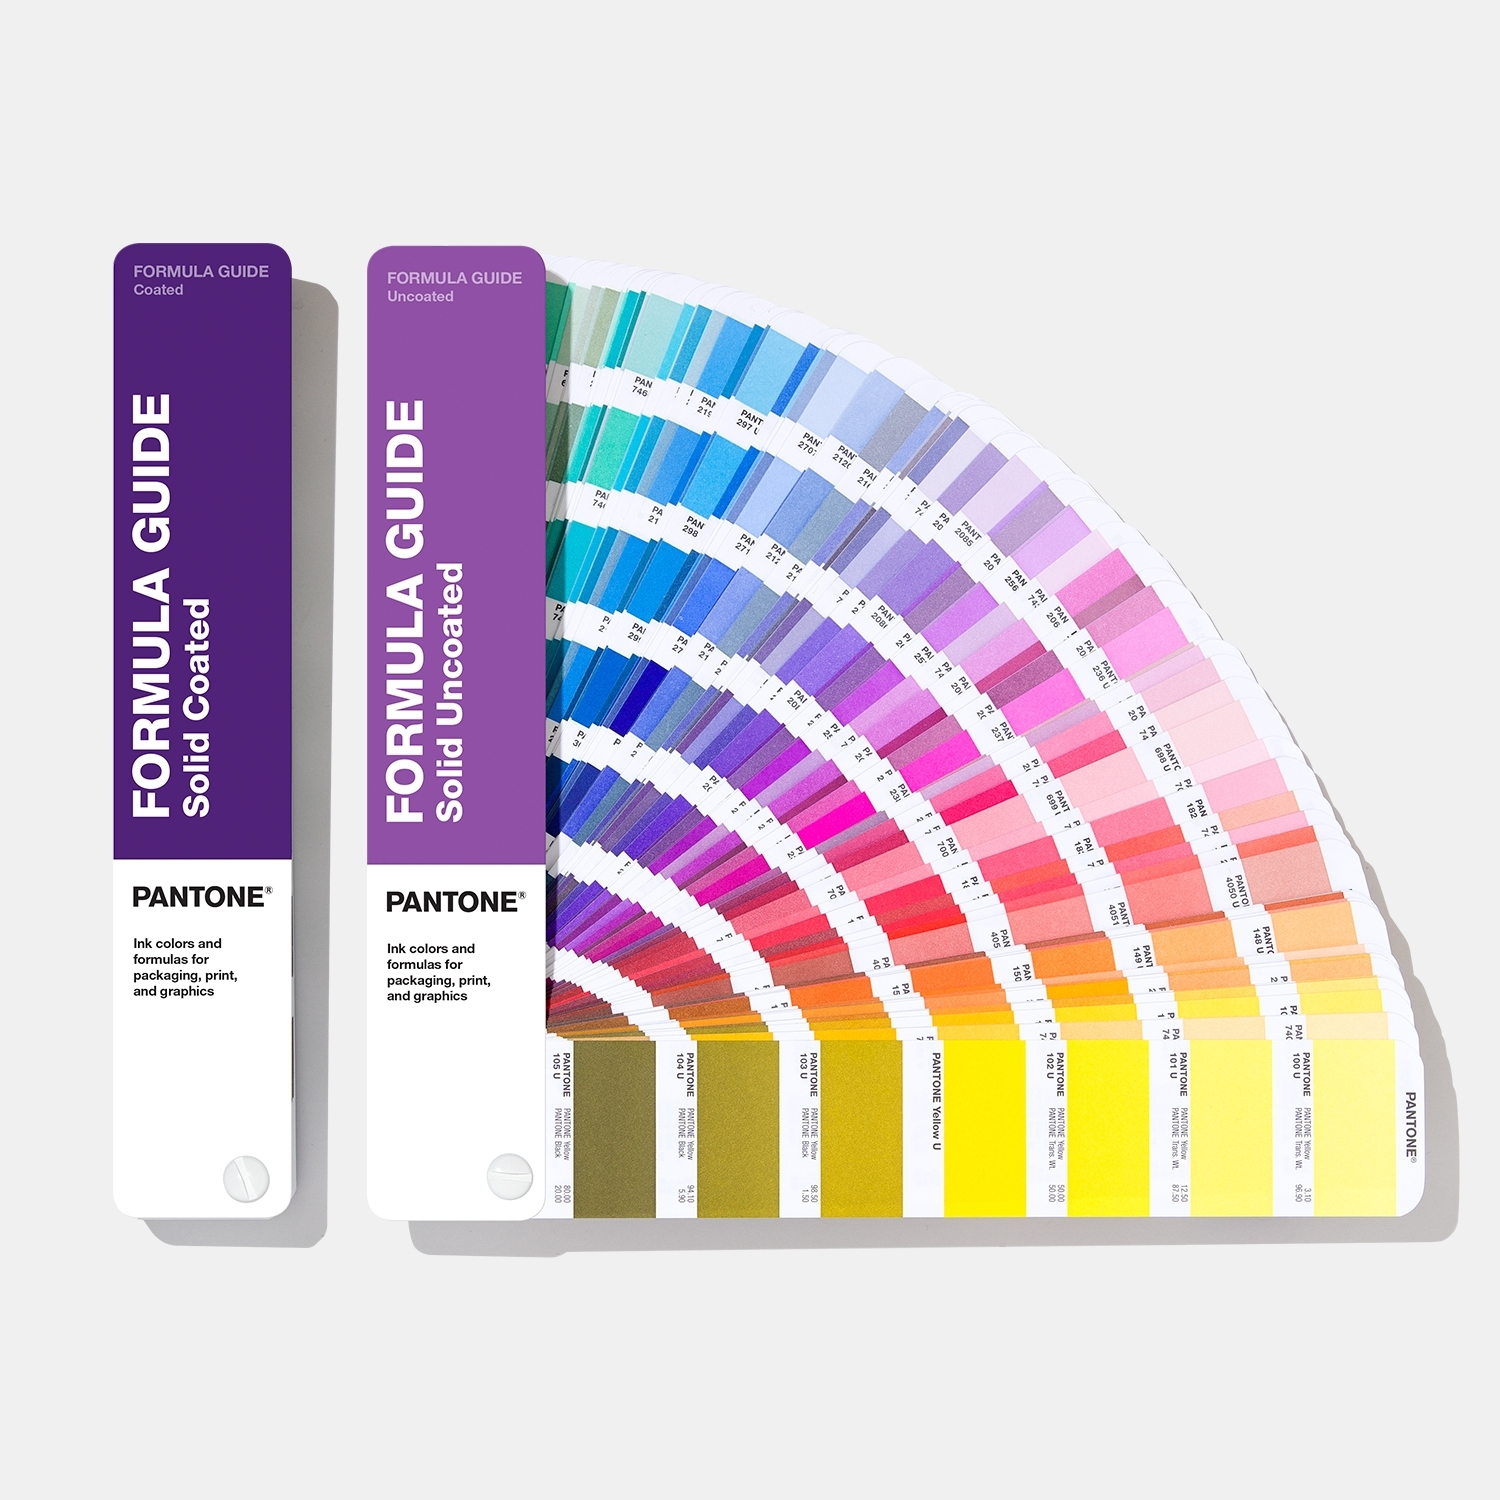 Formula Guide, Limited Edition Pantone Color of the Year 2018 Ultra Violet